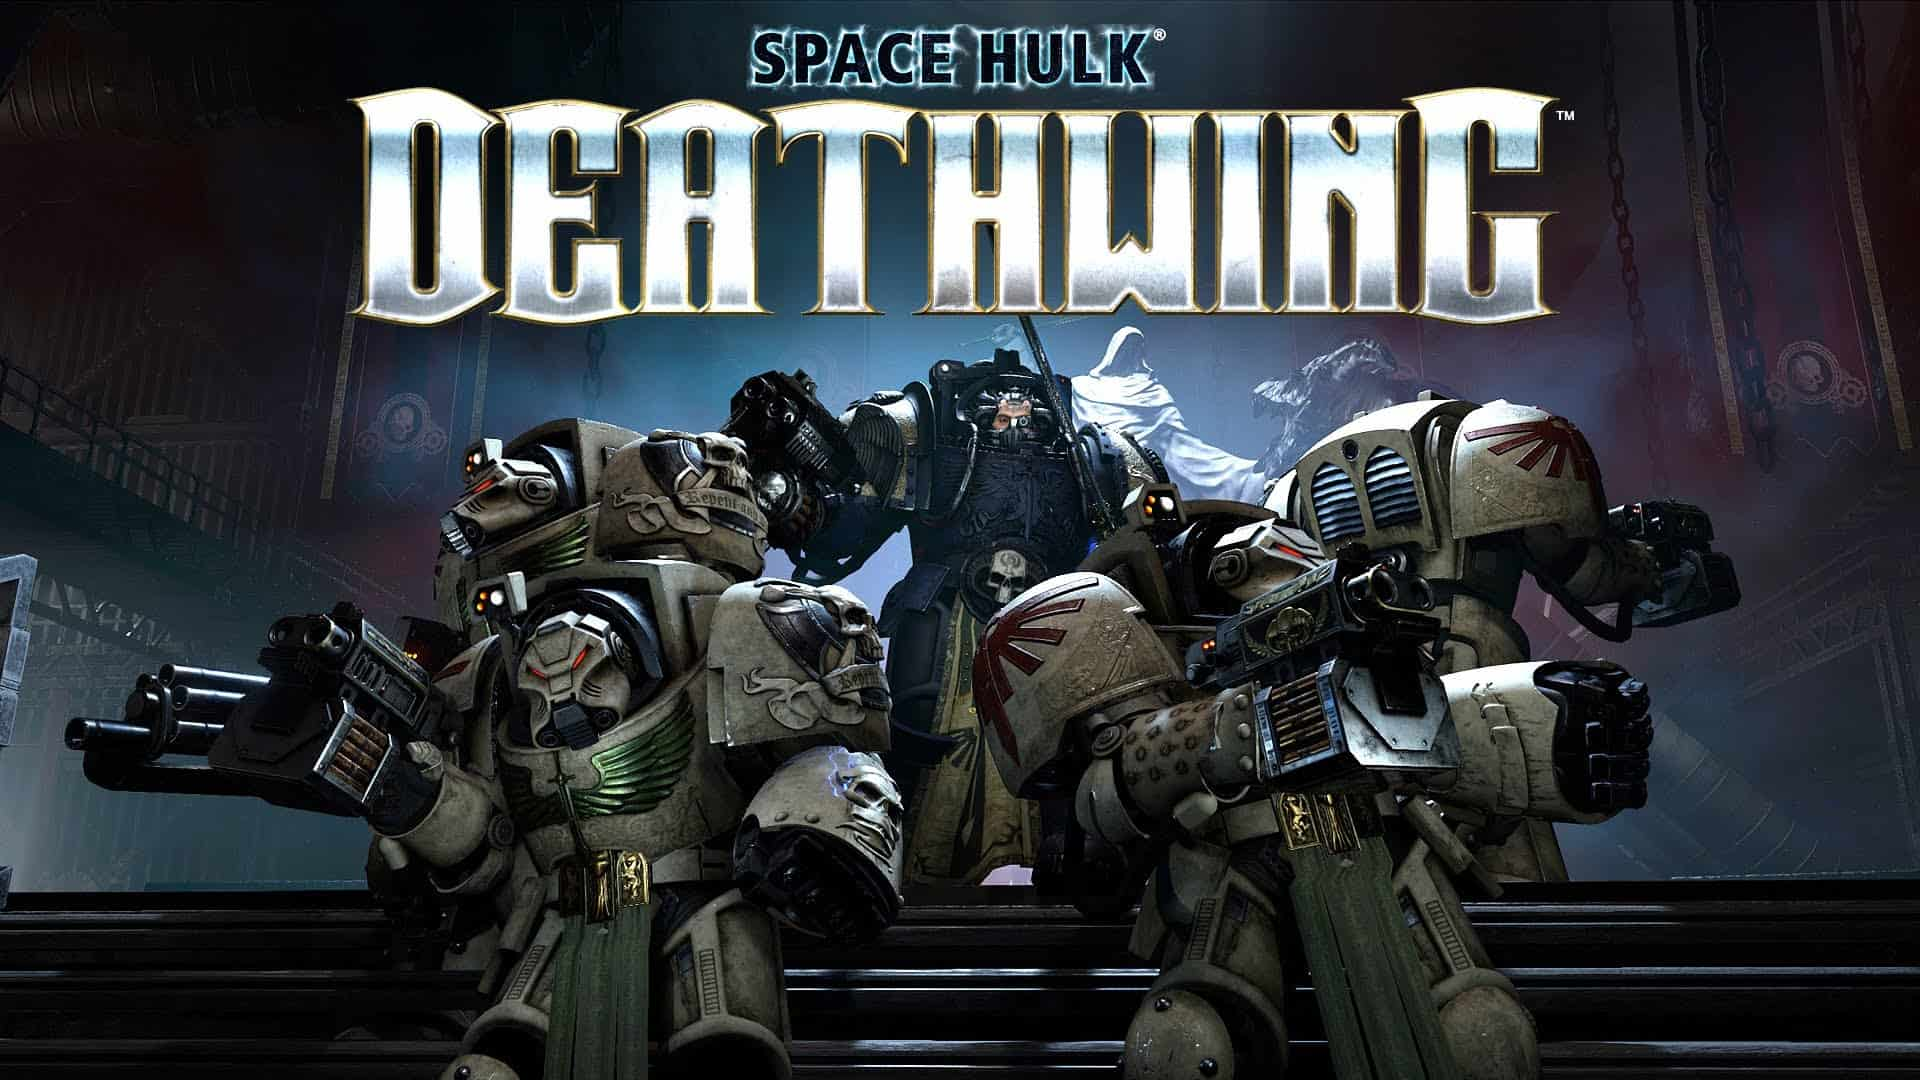 http://www.dreadcentral.com/wp-content/uploads/2015/06/space-hulk-deathwing1.jpg